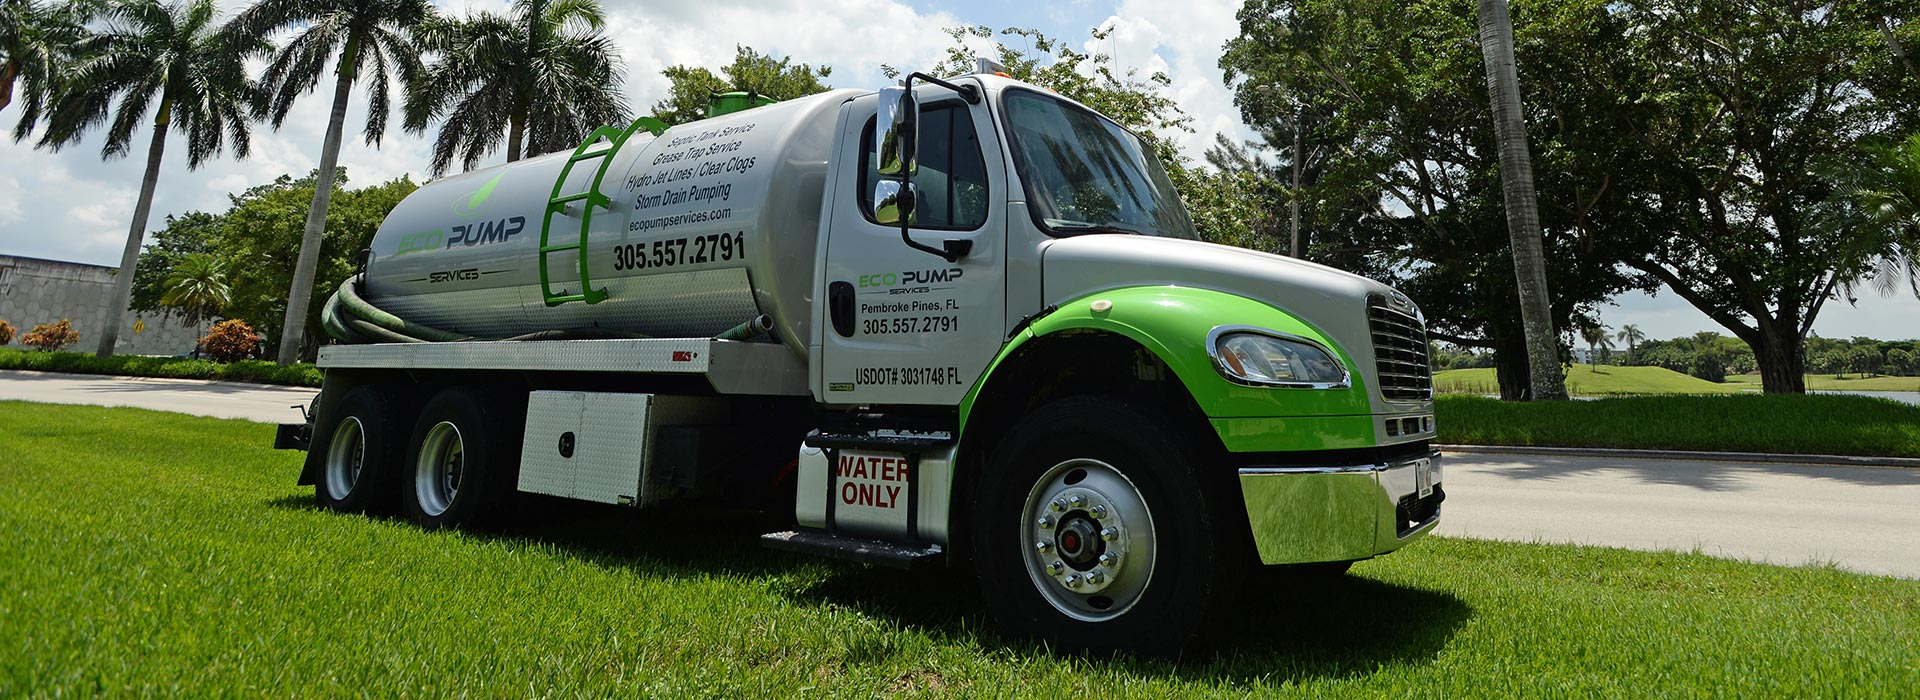 Eco Pumping Services truck